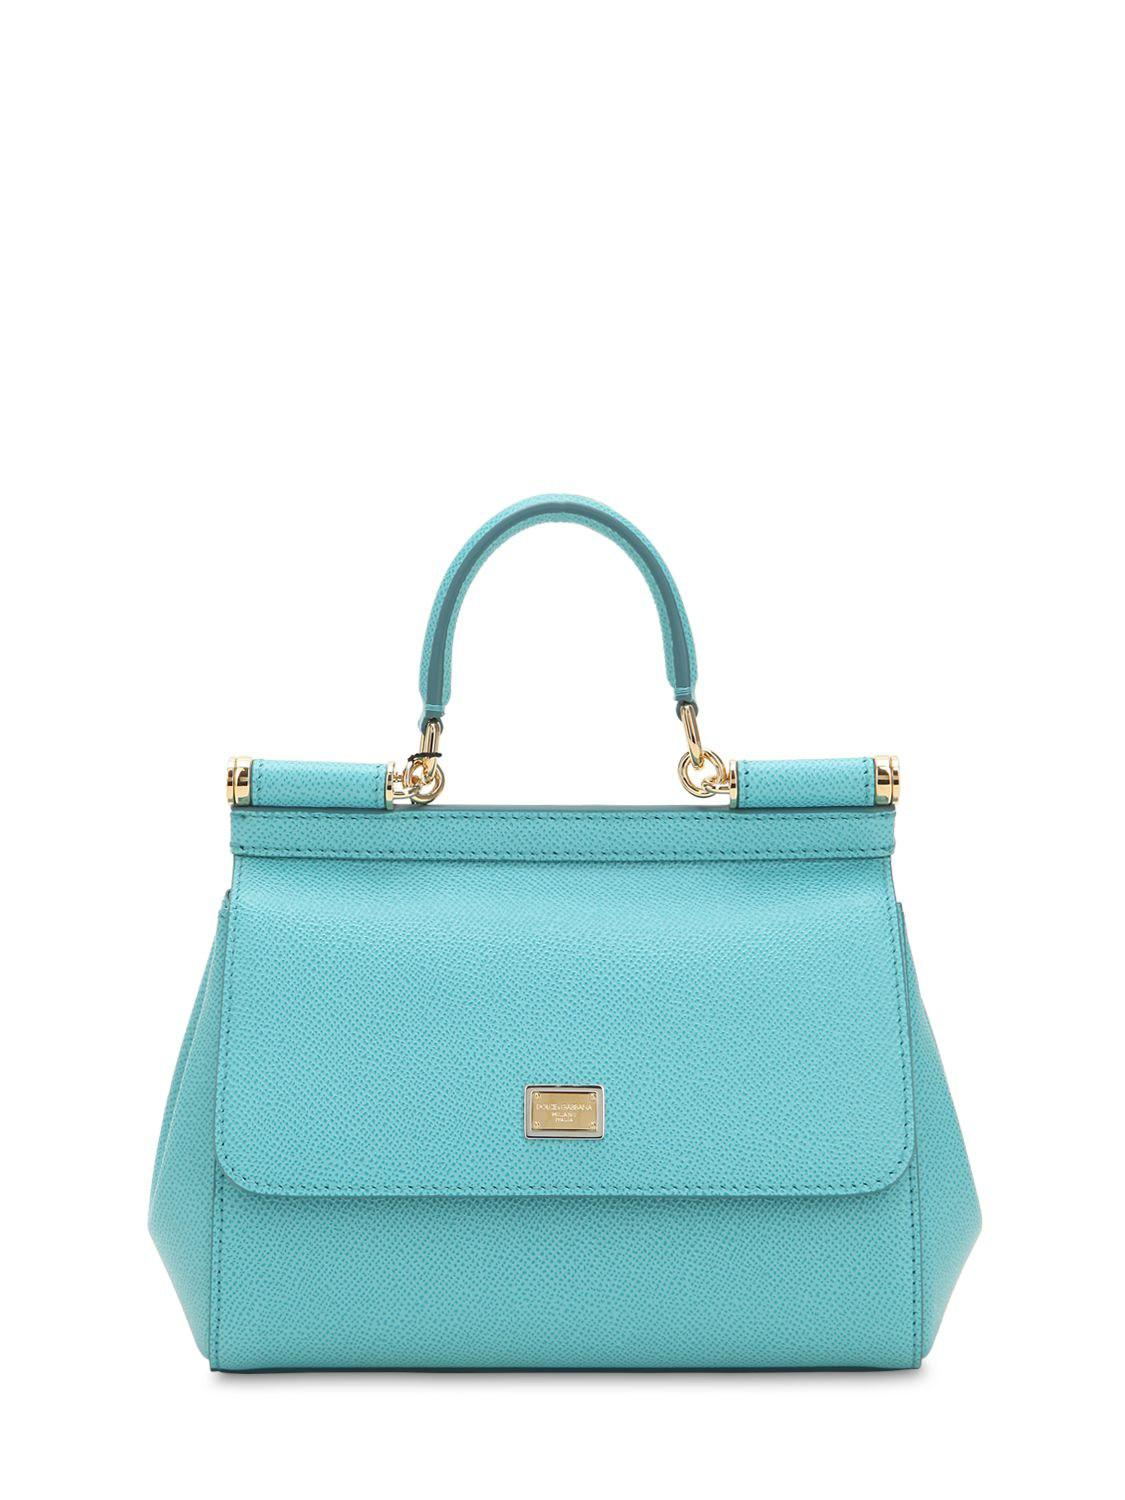 5332b4c06d Lyst - Dolce   Gabbana Small Sicily Dauphine Leather Bag in Blue